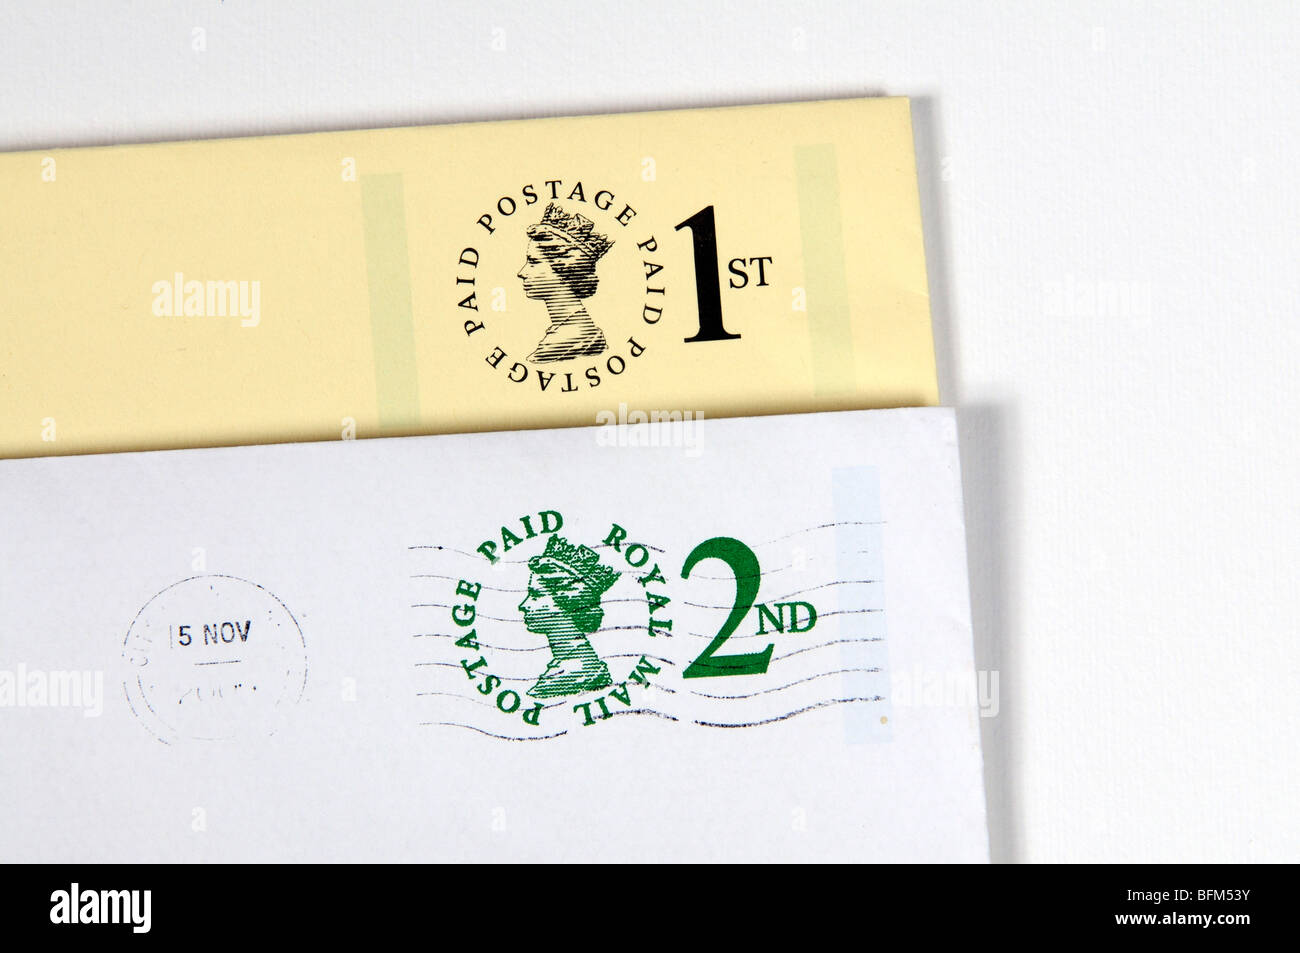 1st and 2nd class postage paid Royal Mail label - Stock Image